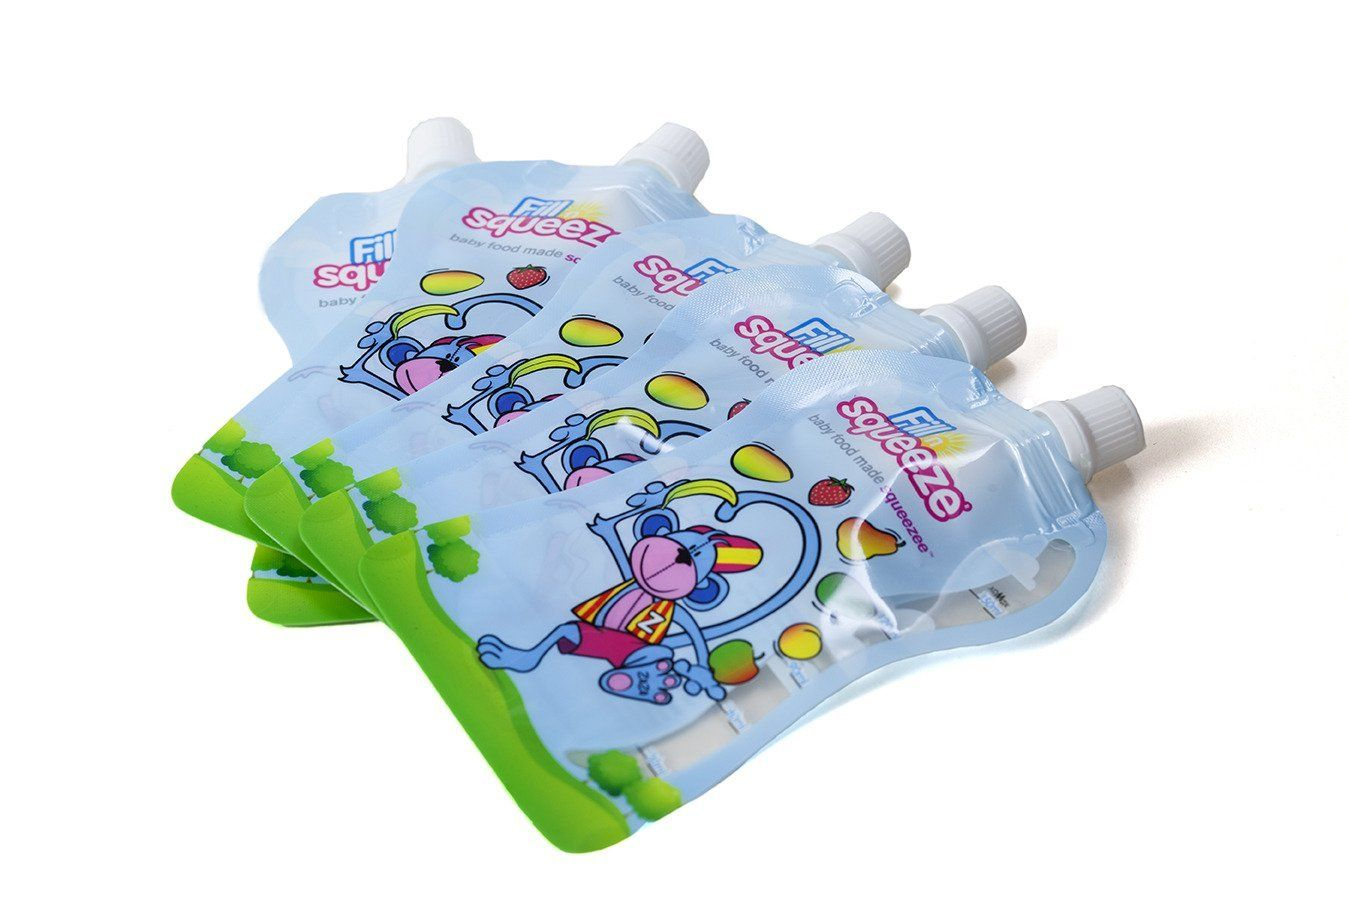 Fill n squeeze squeezee pouches pack of 40 pouches